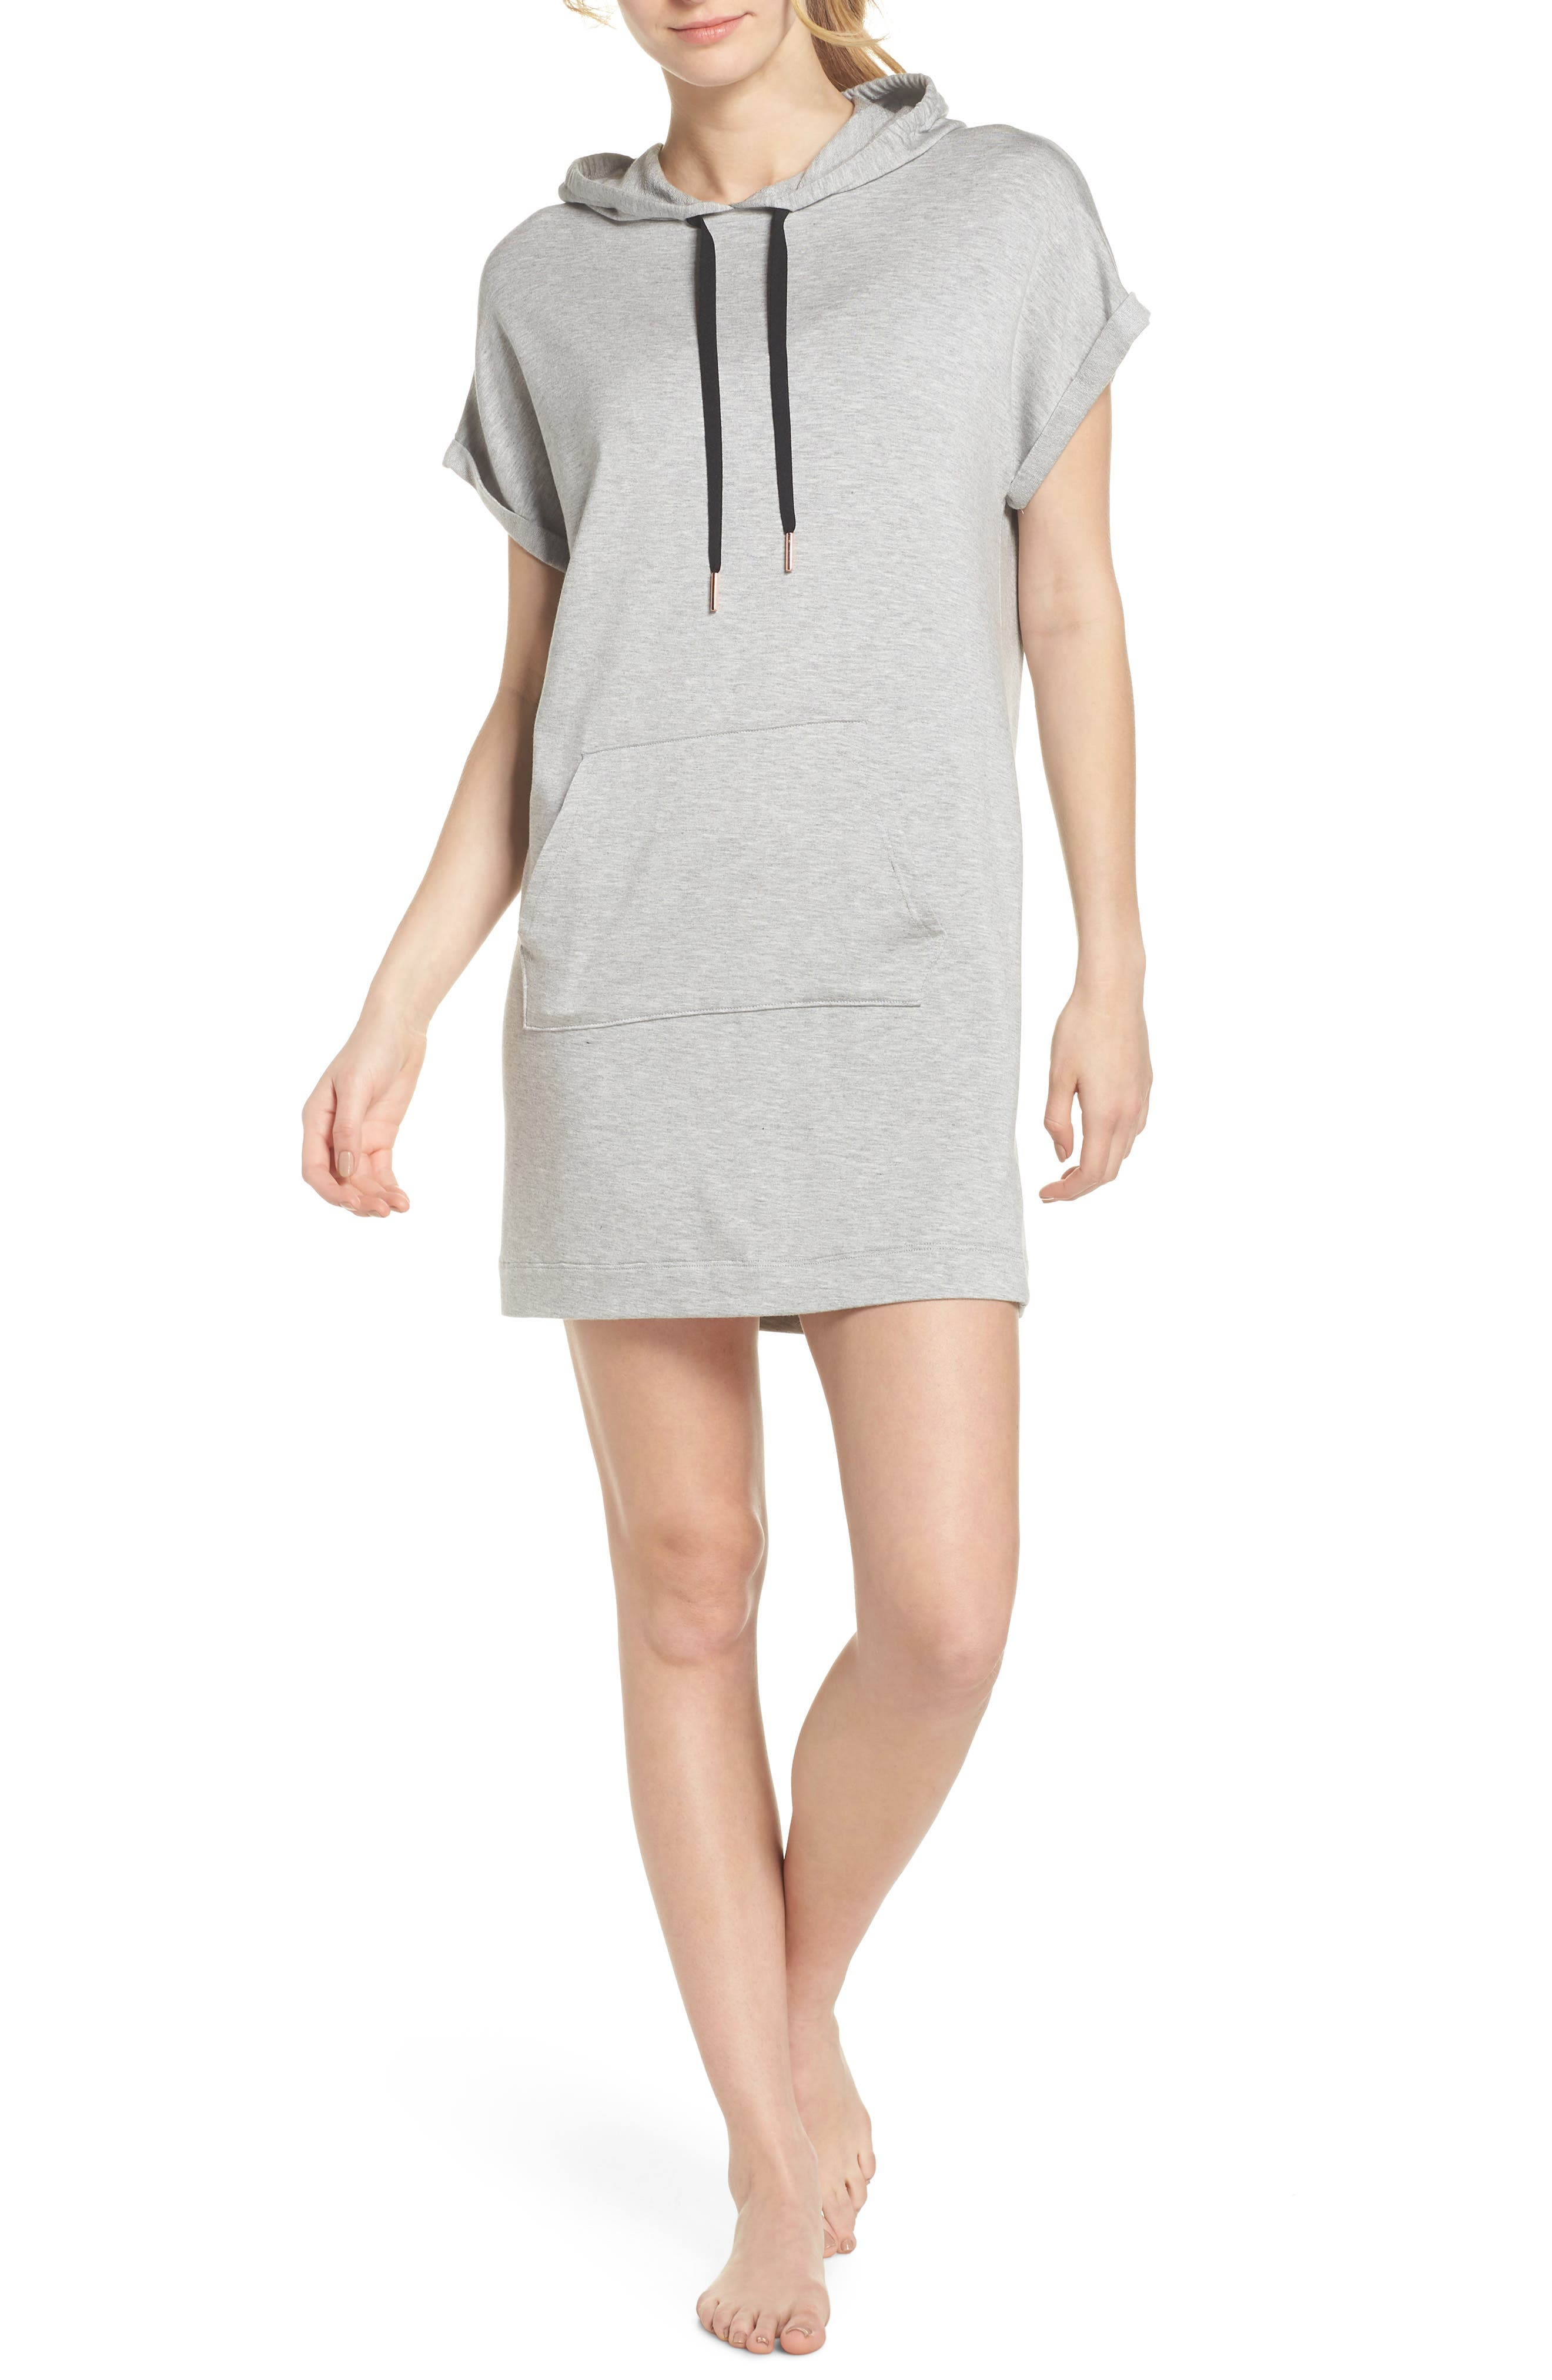 It's All Hoodie Hooded Sweatshirt Dress,                         Main,                         color, Light Heather Gray